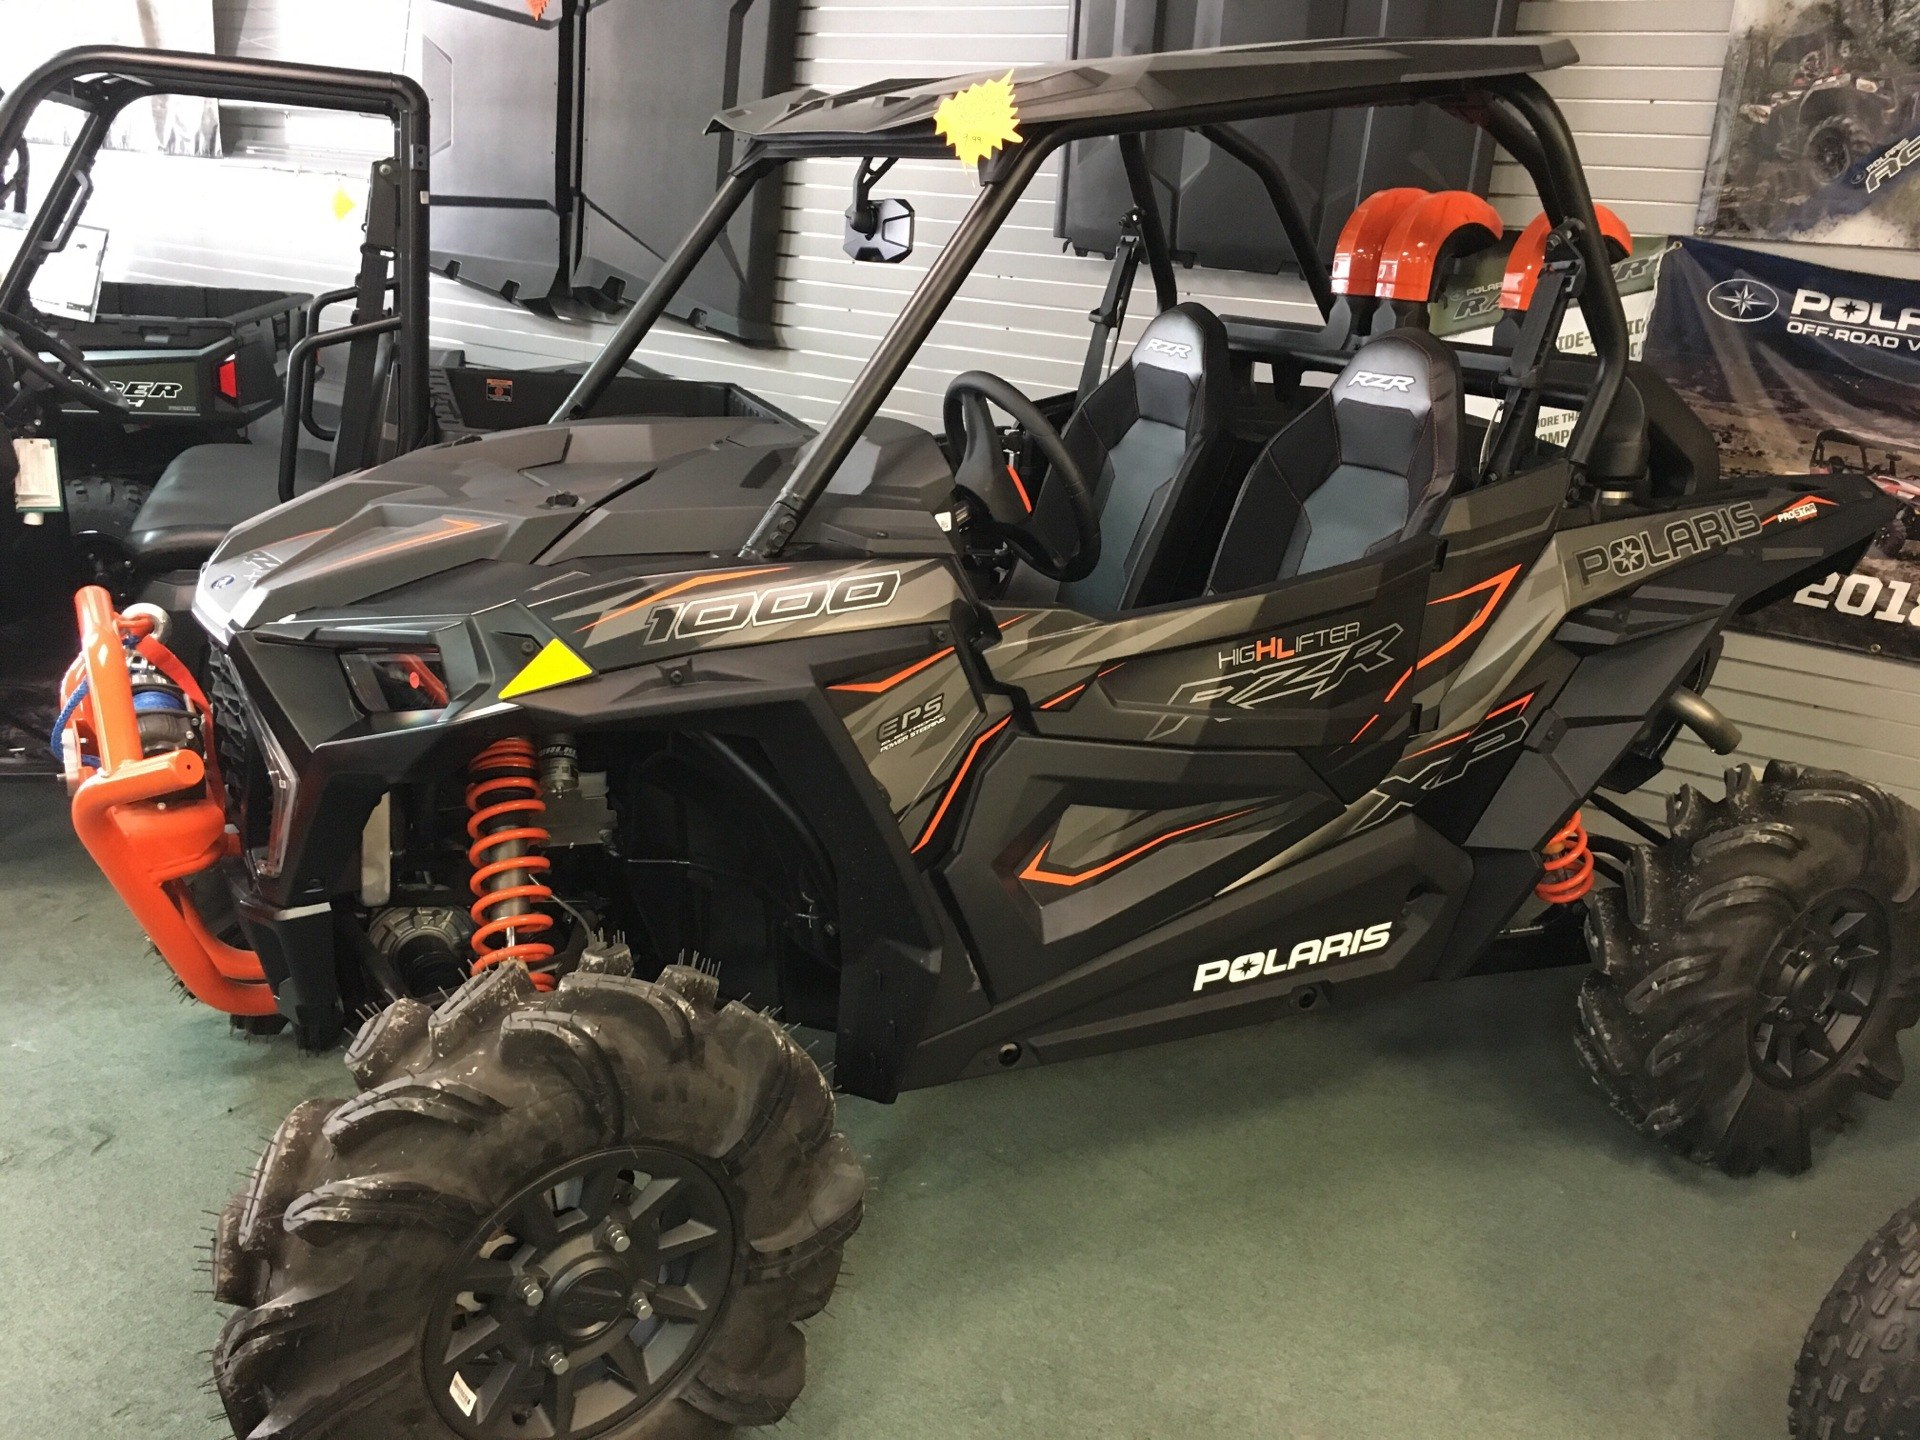 2019 Polaris RZR XP 1000 High Lifter for sale 2589